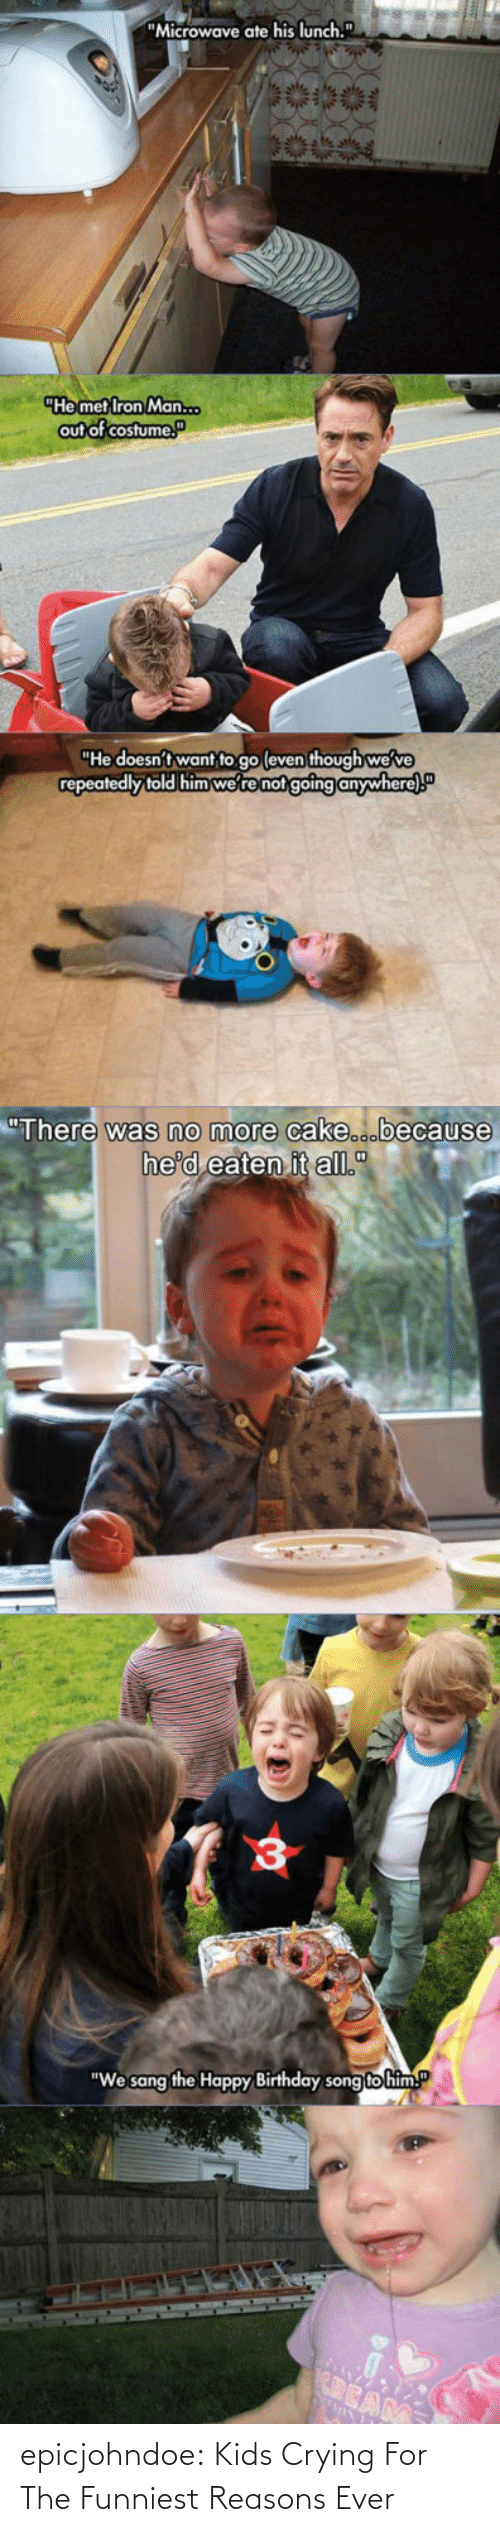 Crying, Tumblr, and Blog: epicjohndoe:  Kids Crying For The Funniest Reasons Ever